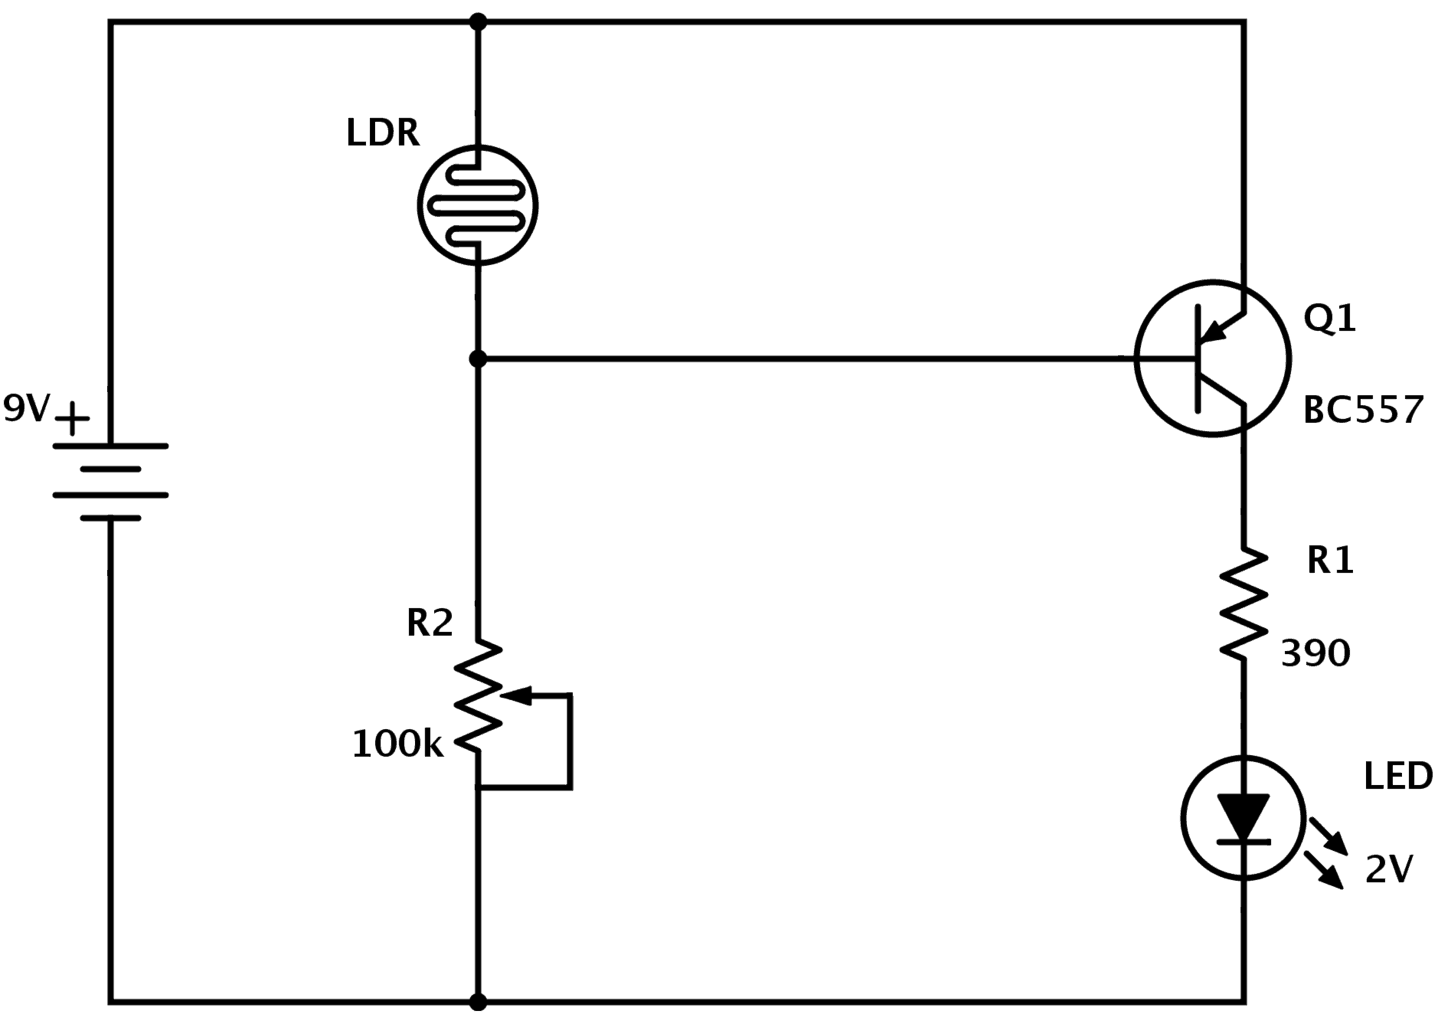 hight resolution of ldr circuit diagram build electronic circuits ldr circuit diagram build electronic circuits